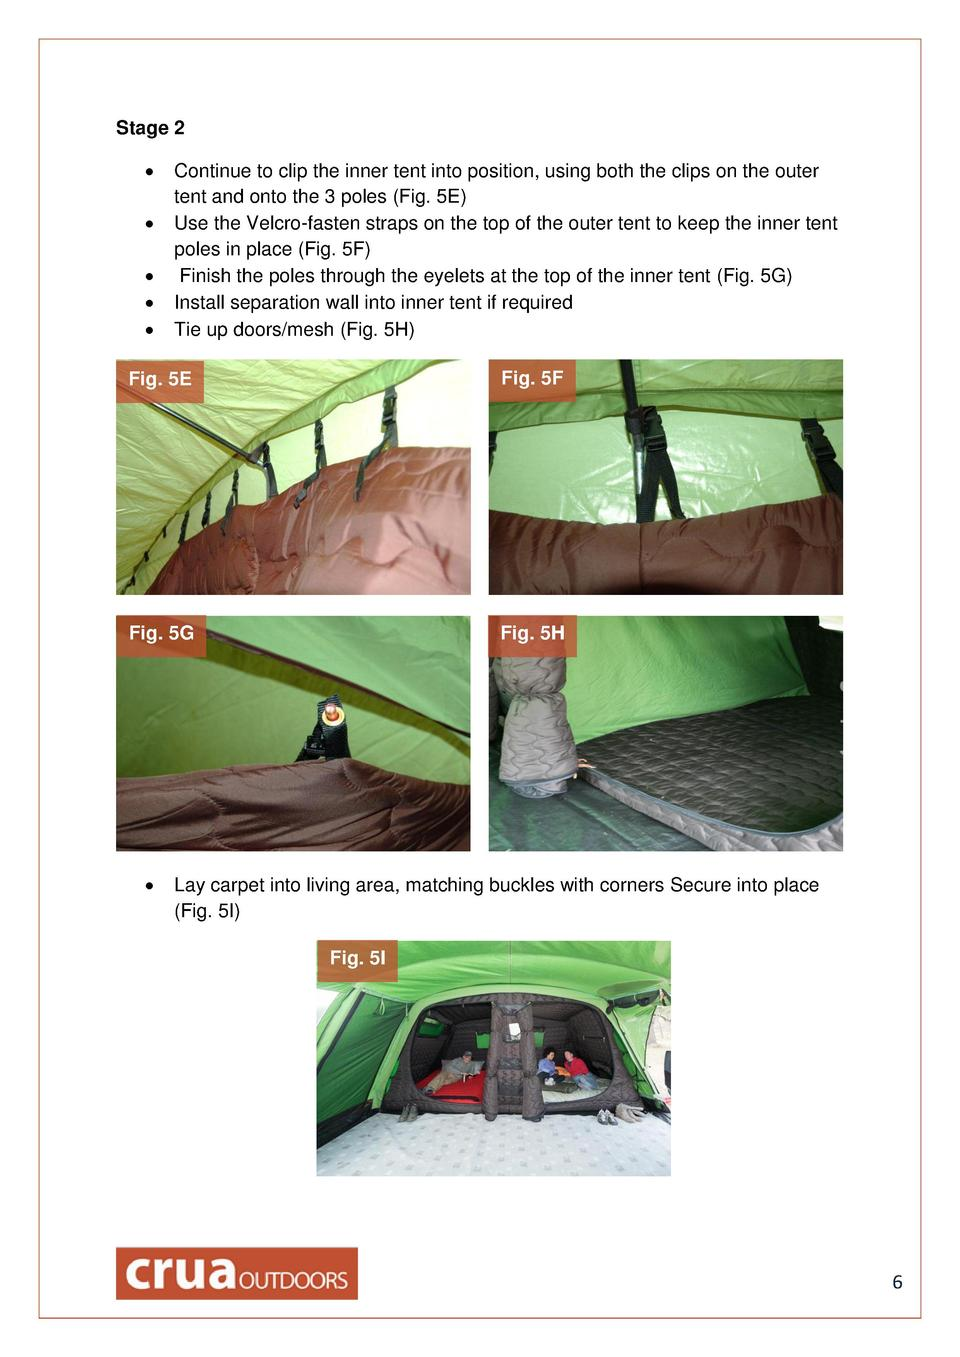 Stage 2                      Continue to clip the inner tent into position, using both the clips on the outer tent and ont...